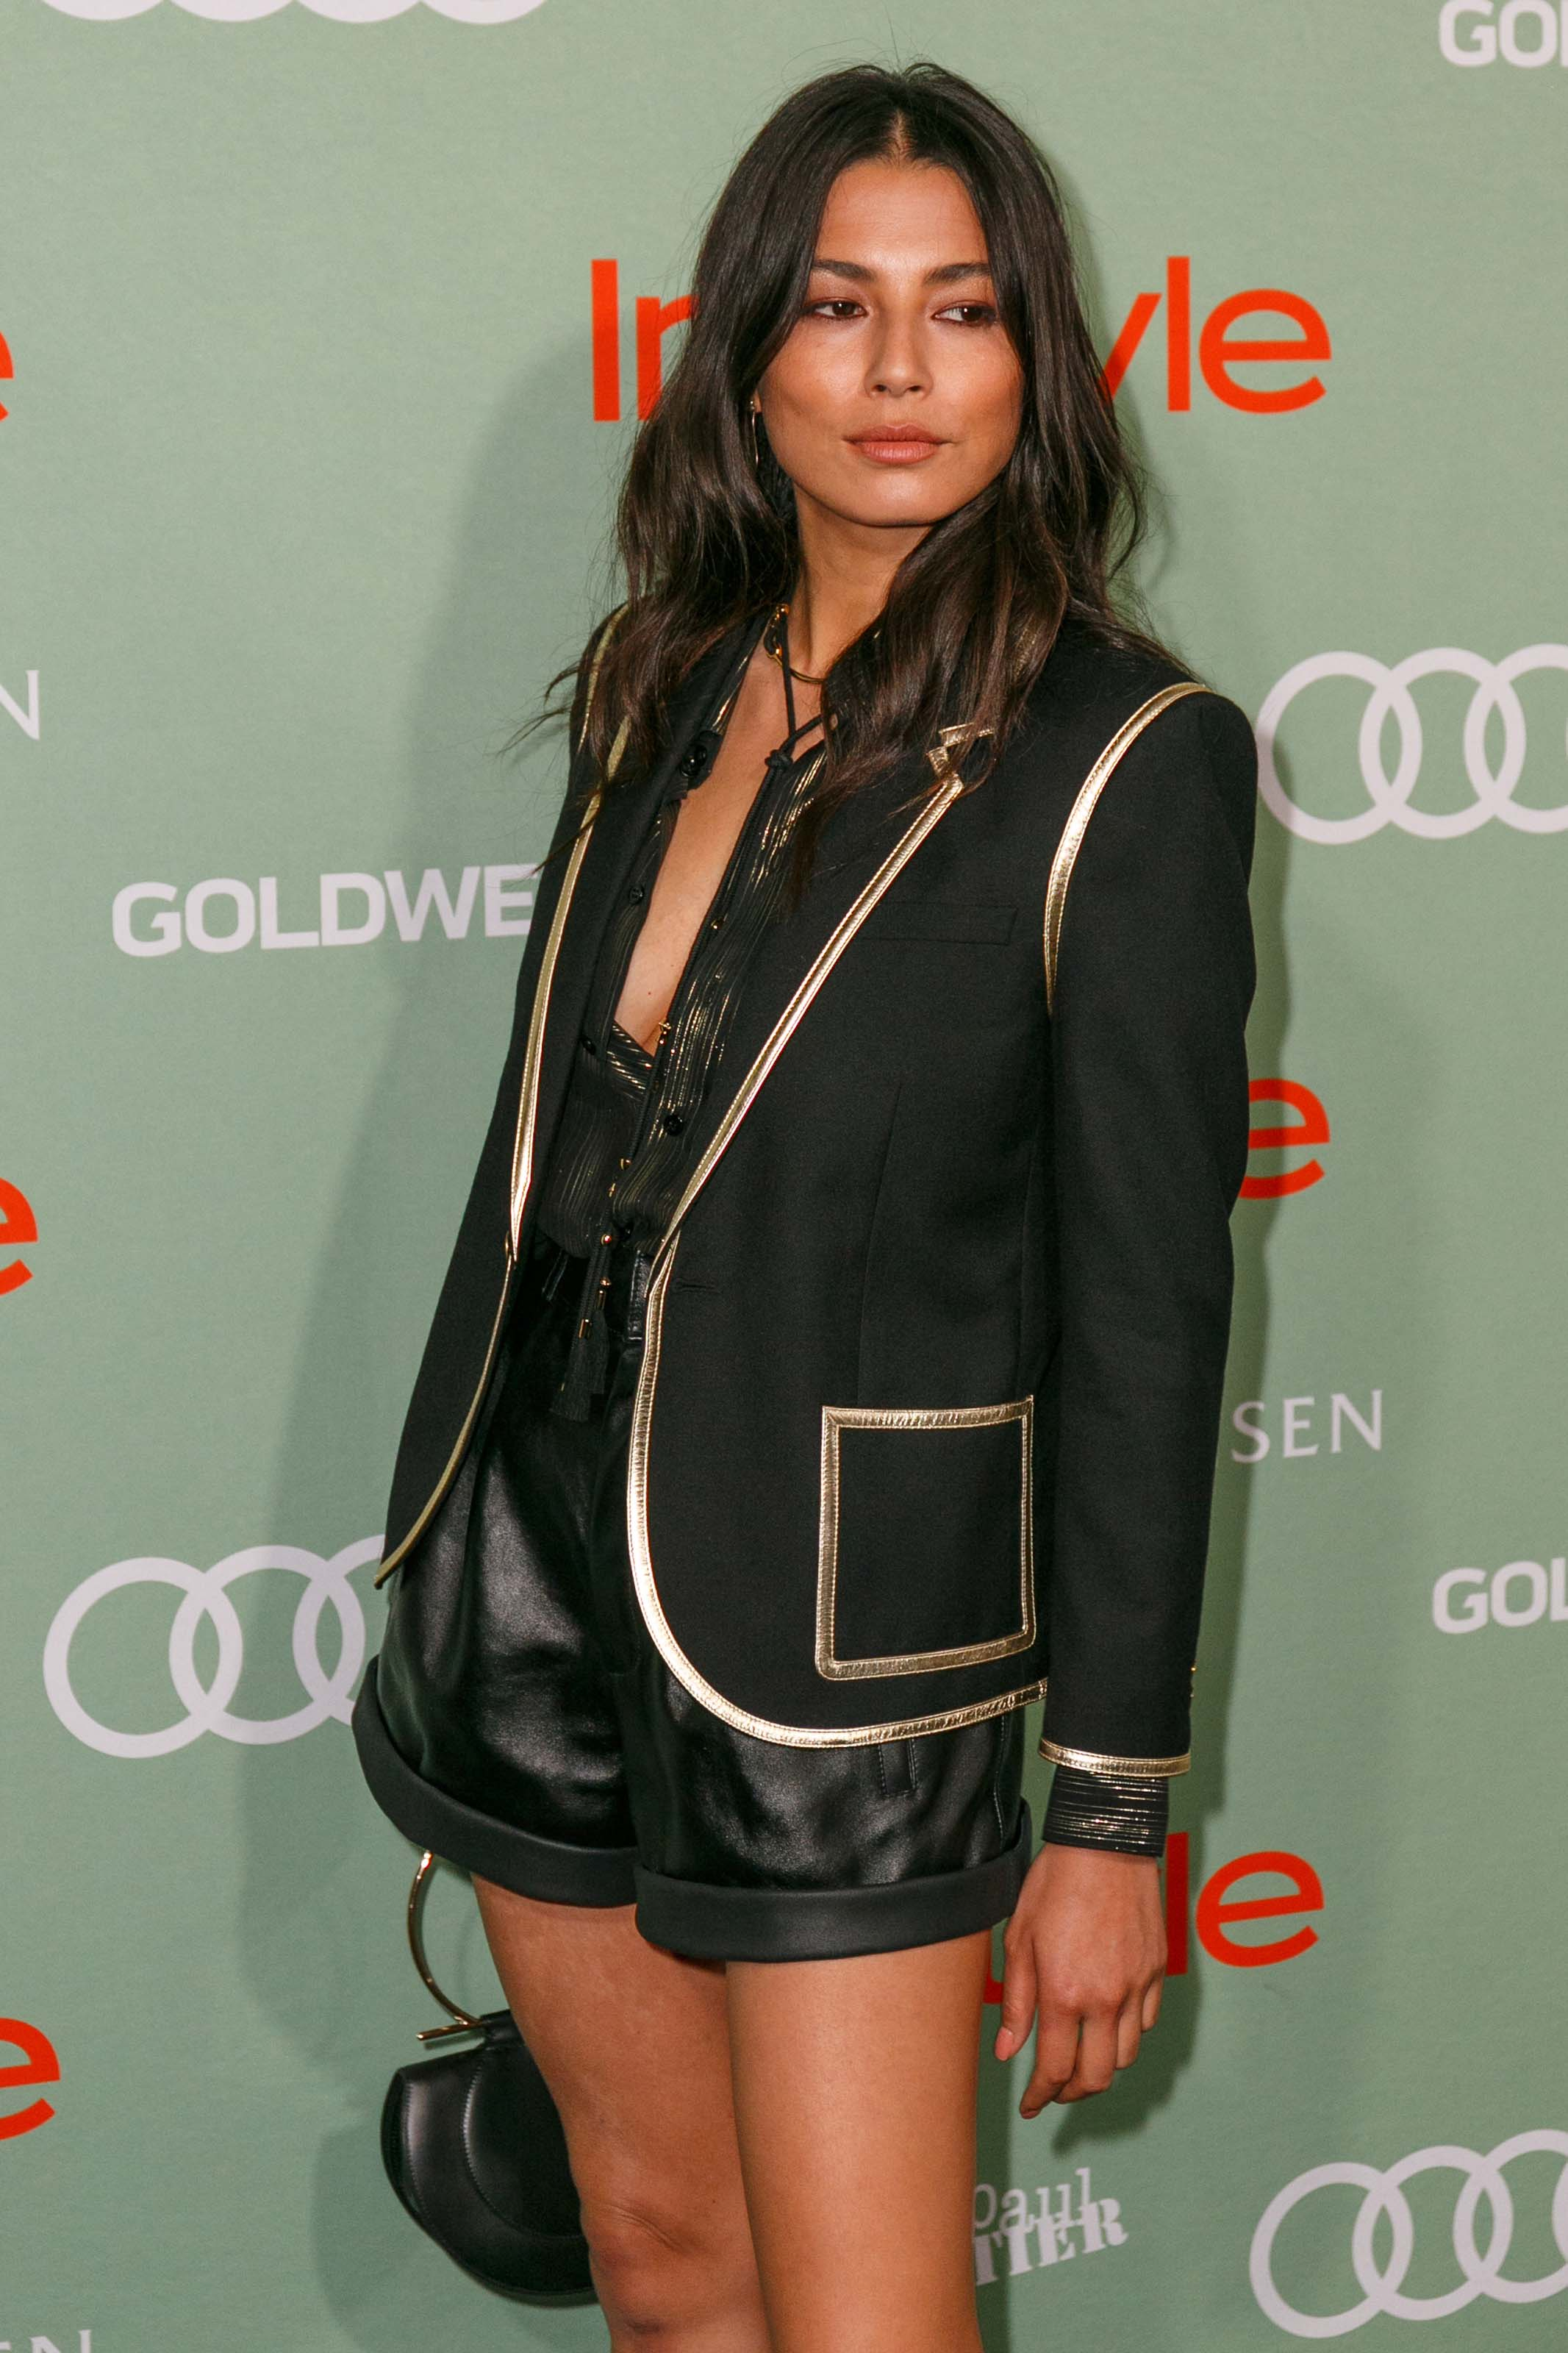 Jessica Gomes attends Women of Style Awards